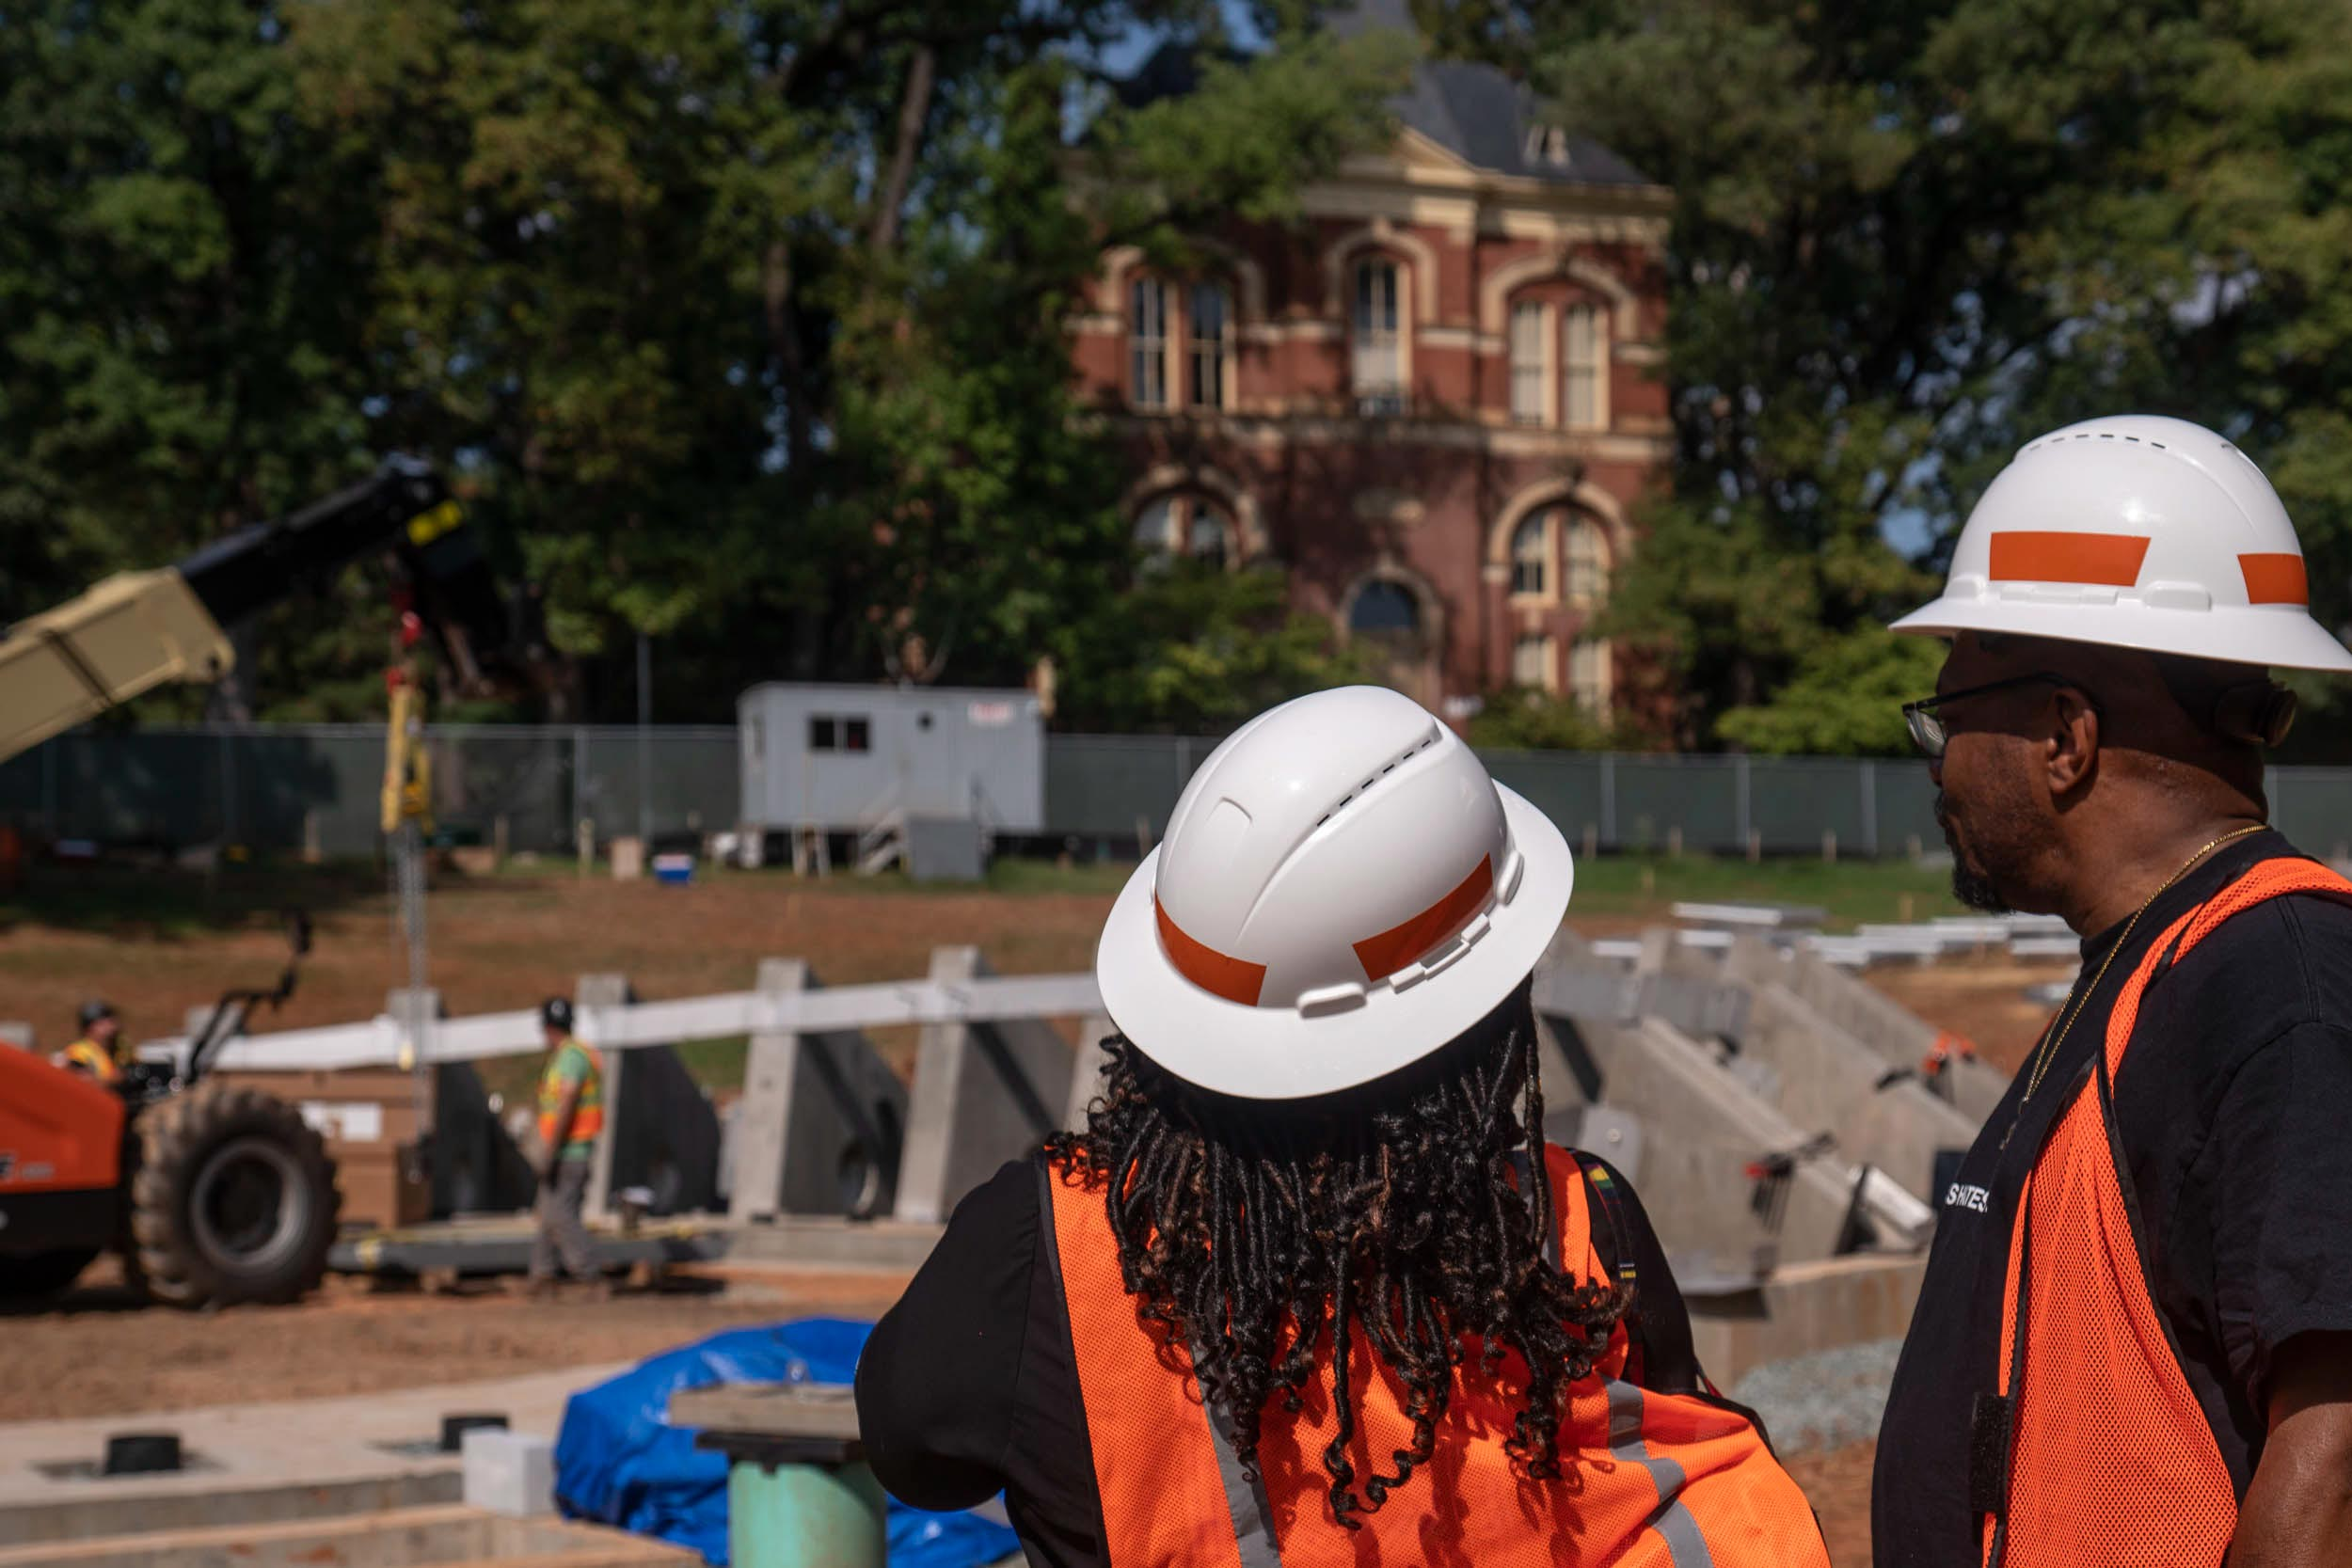 DeTeasa Gathers, a member of the Memorial to Enslaved Laborers Community Engagement Committee, and her husband Don Gathers watched the first stone of the memorial being hoisted into place on Wednesday. (Photo by Sanjay Suchak, University Communications)